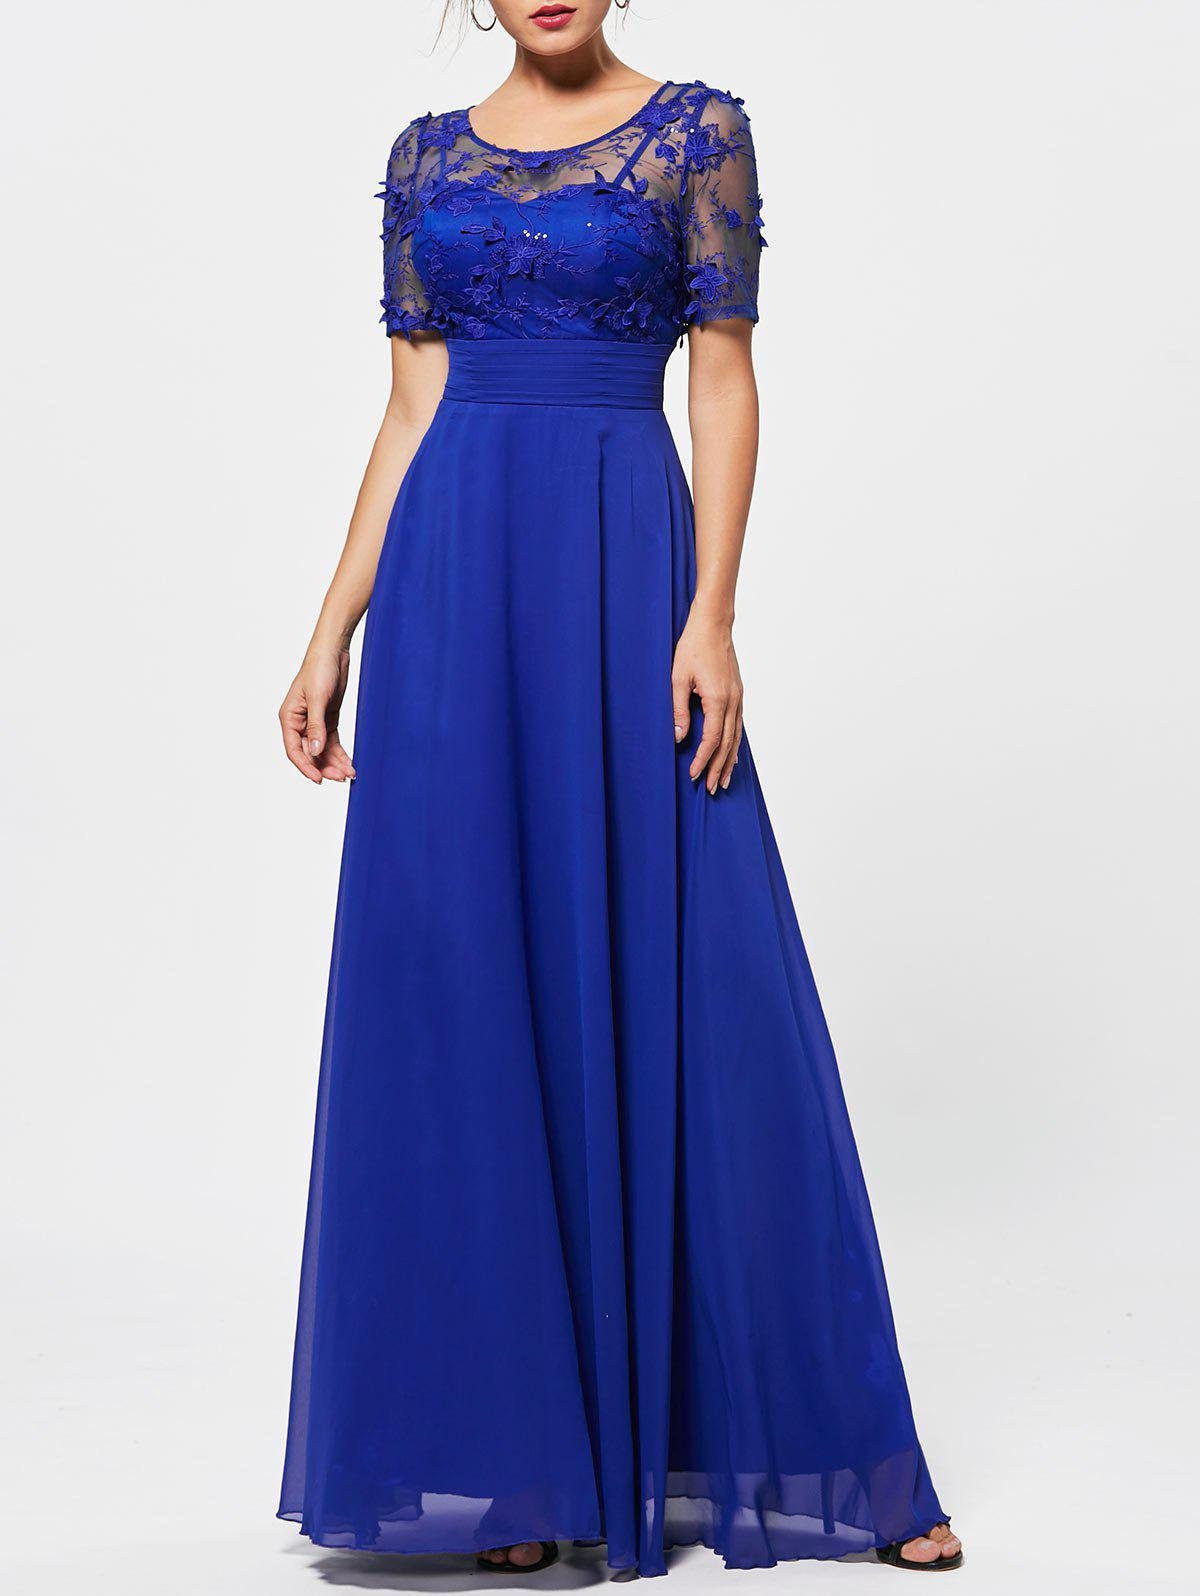 Floral Lace See Thru Empire Waist Evening DressWOMEN<br><br>Size: XL; Color: BLUE; Image Source: Actual Images; Silhouette: A-Line; Dresses Length: Floor-Length; Embellishment: Lace; Neckline: Jewel Neck; Sleeve Length: Short Sleeves; Waist: Empire; Material: Cotton,Polyester; Season: Fall; Body Shape: Misses; Weight: 0.5700kg; Package Contents: 1 x Dress;